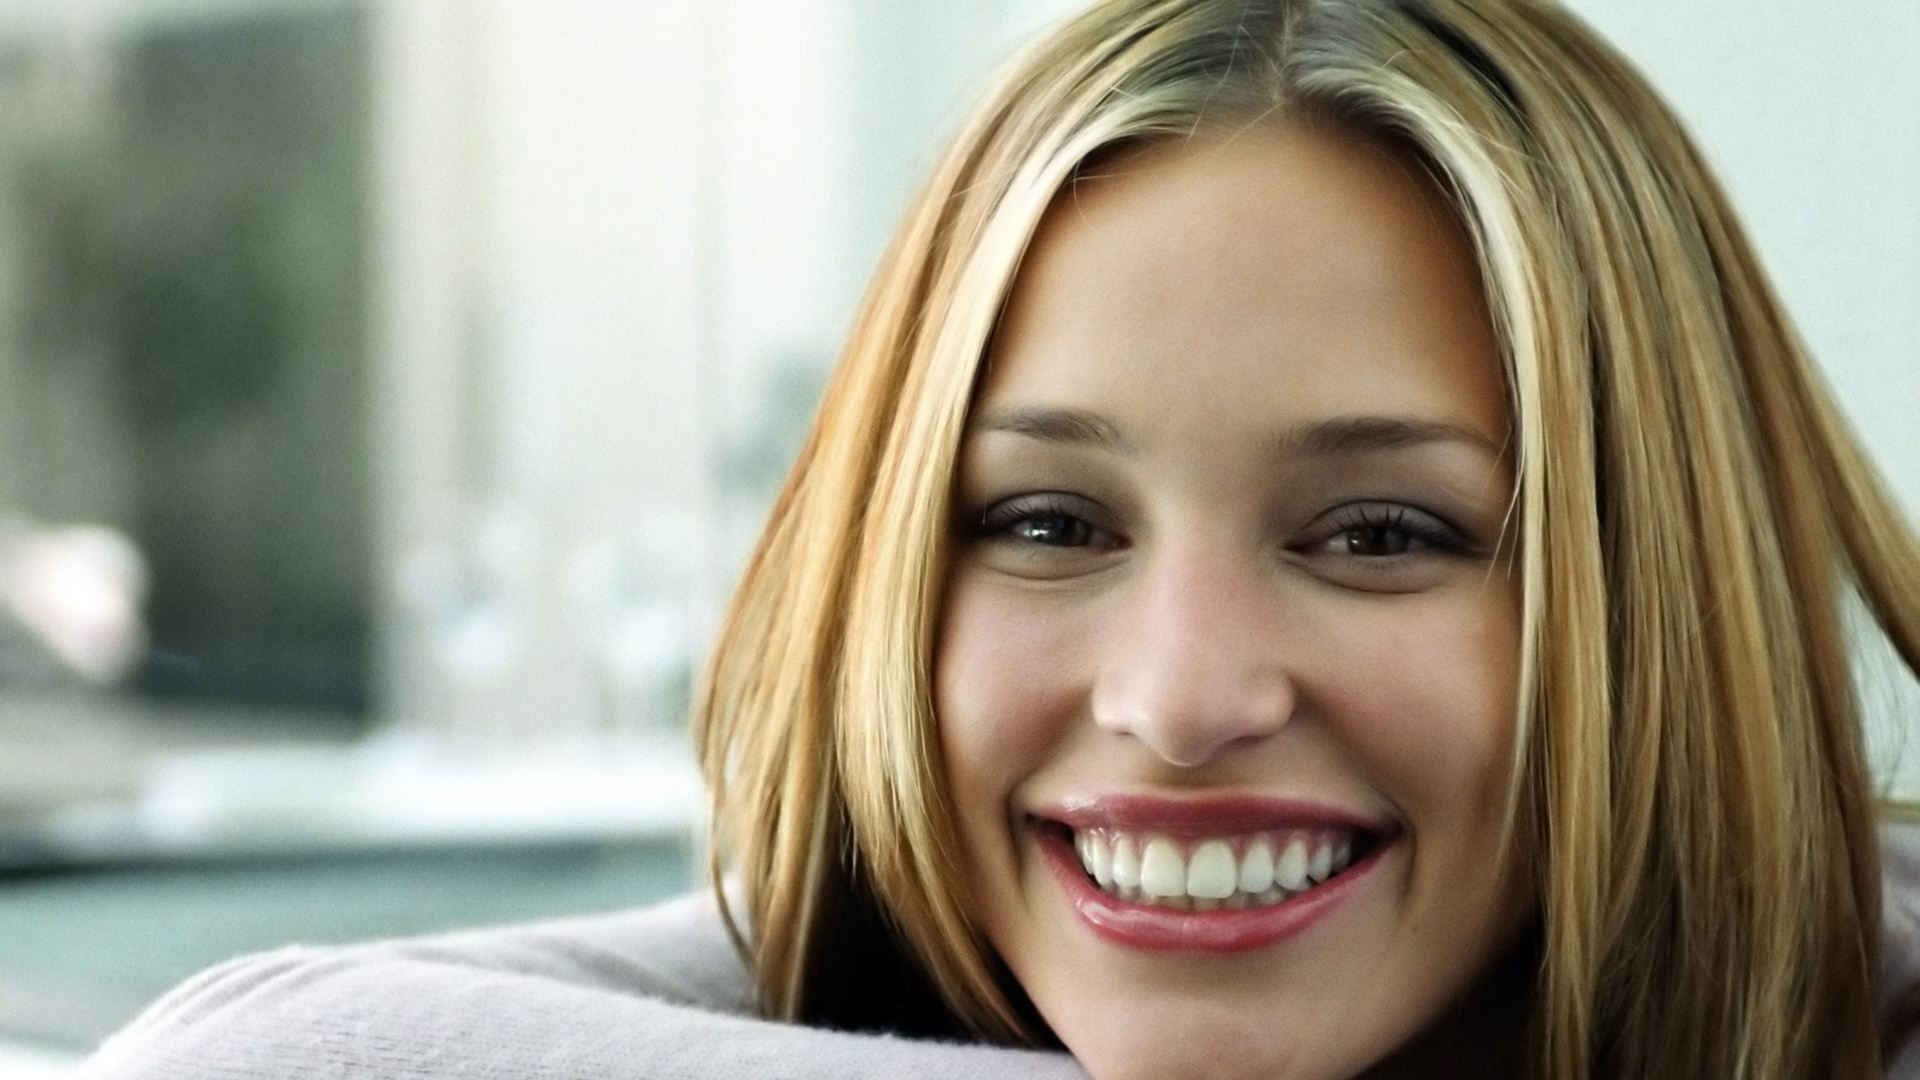 Res: 1920x1080, Piper Perabo Wallpapers 11 - 1920 X 1080